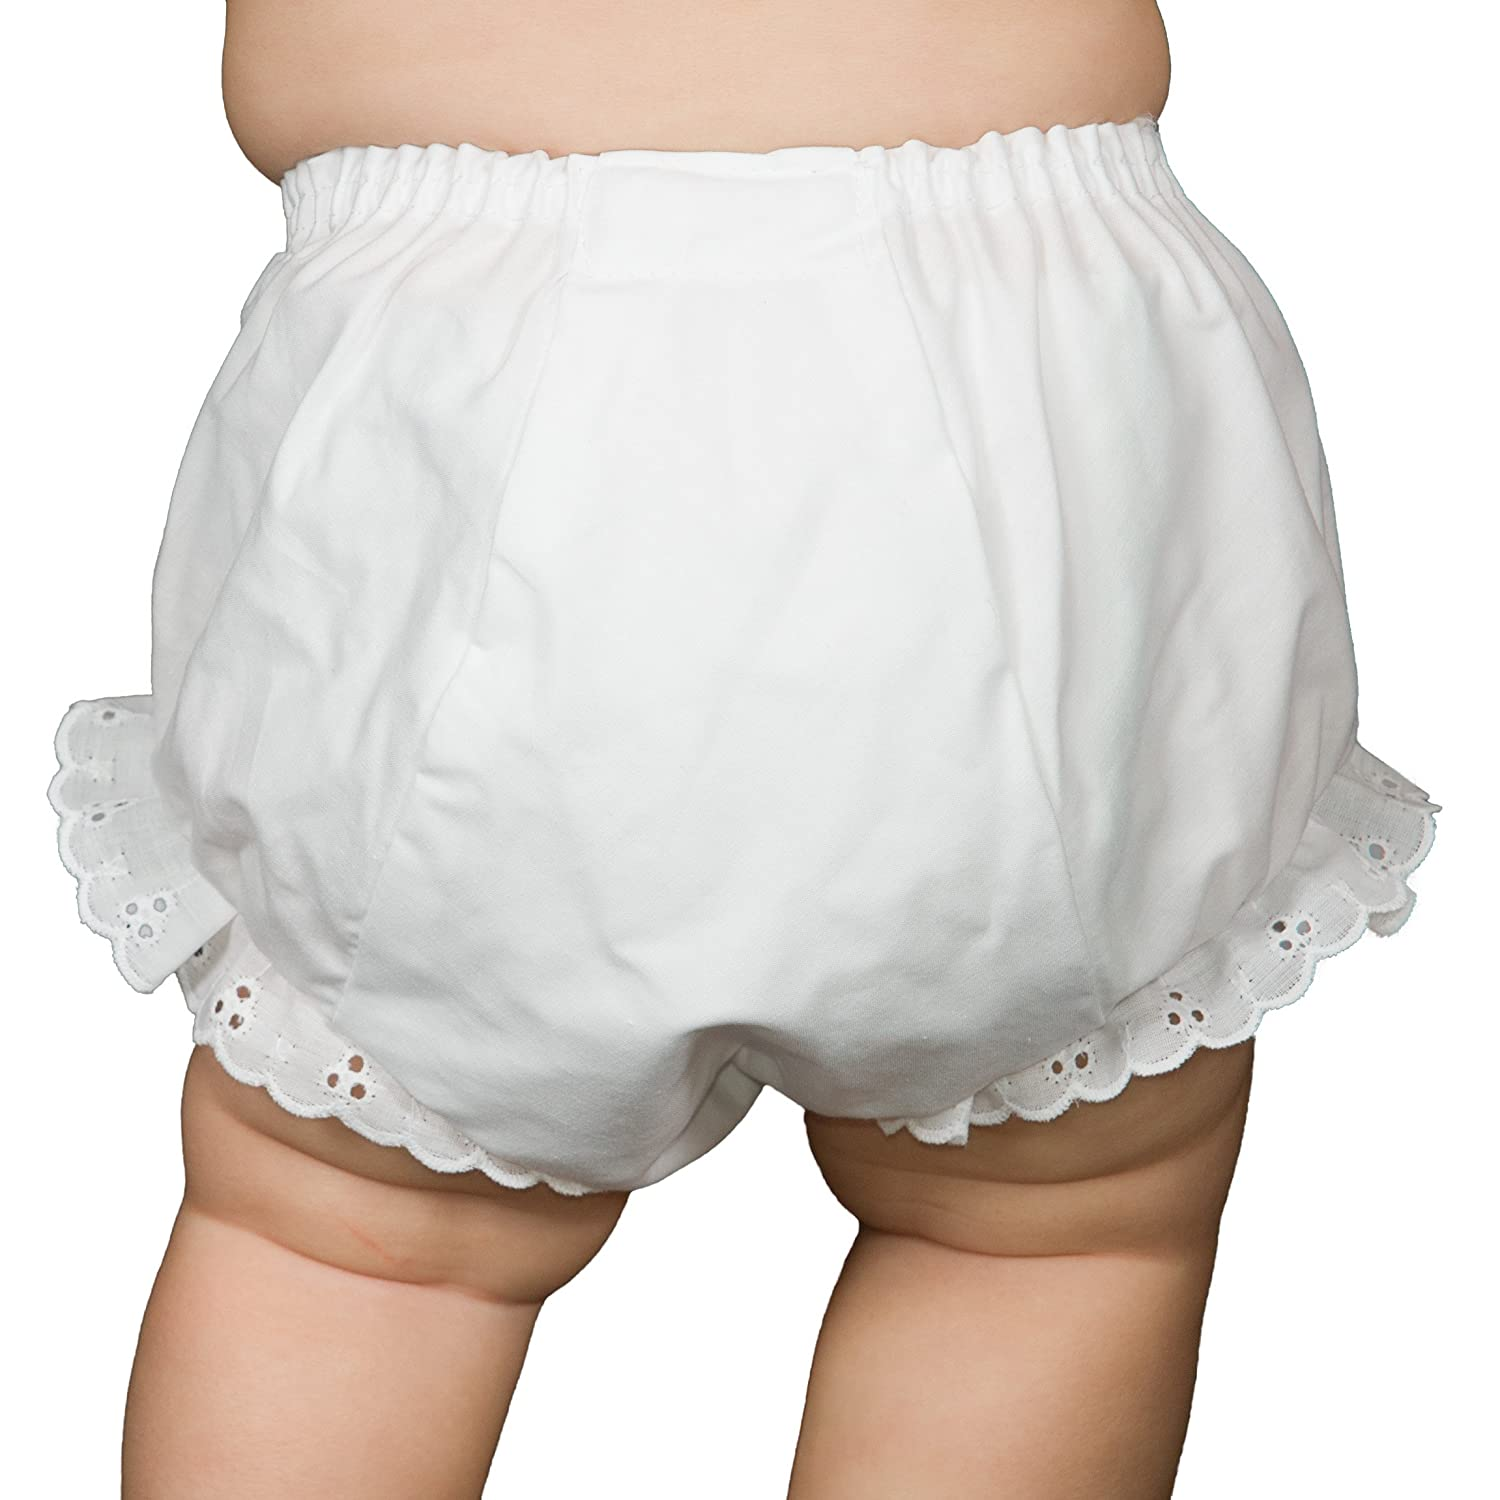 IC Collections Baby Girls White Double Seat Diaper Cover Bloomers 000160-WH